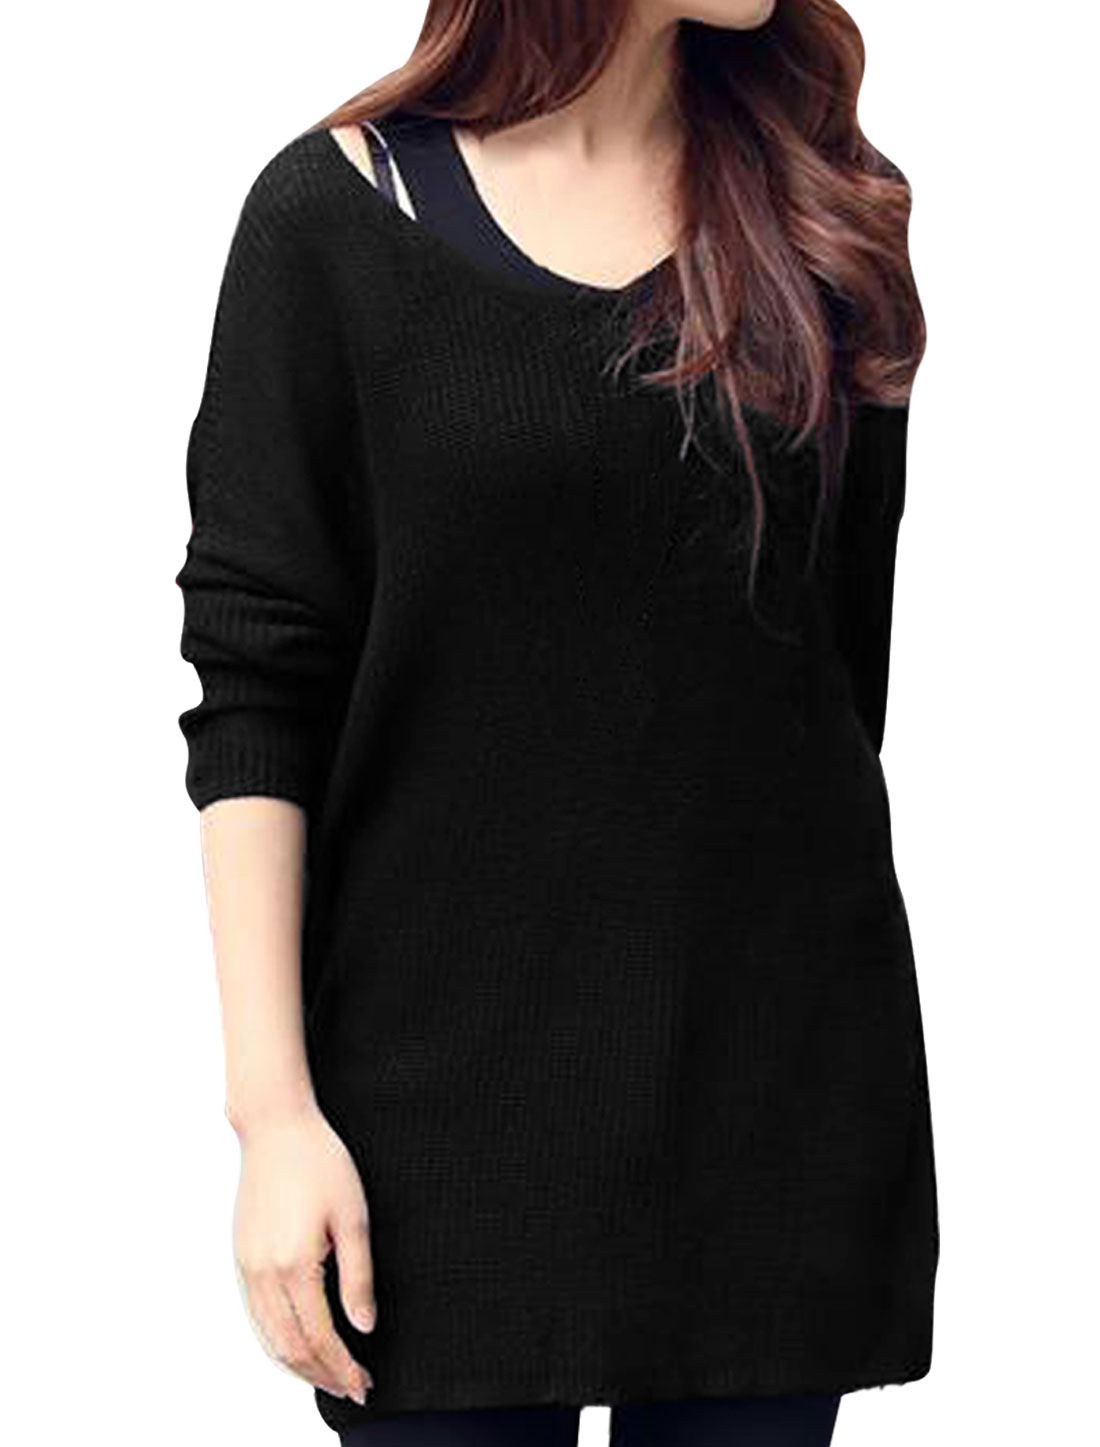 Lady Trendy V Neck Long-sleeved Pullover Design Black Sweater S